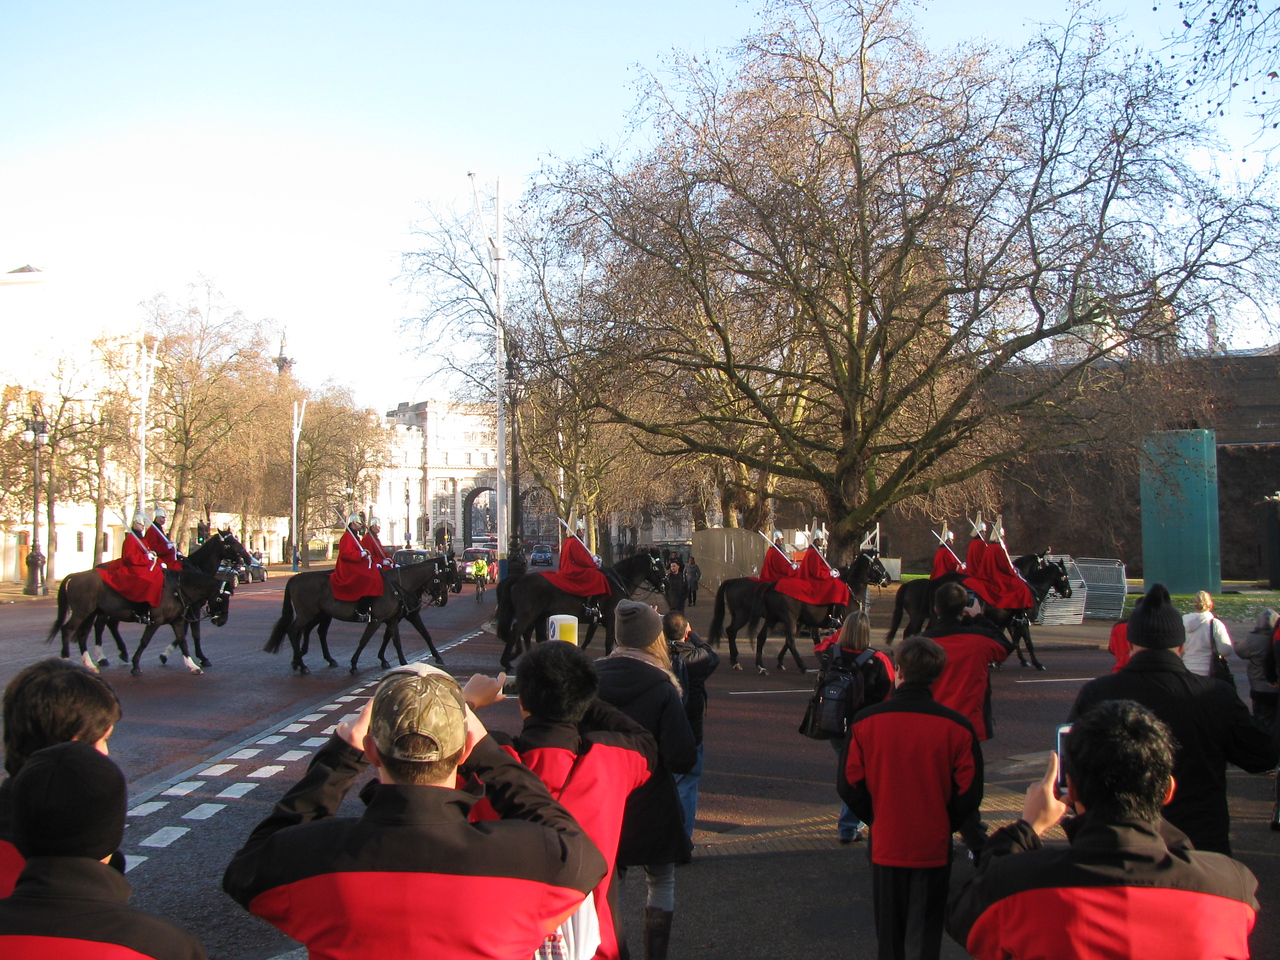 Taking pictures of the horse guard 2